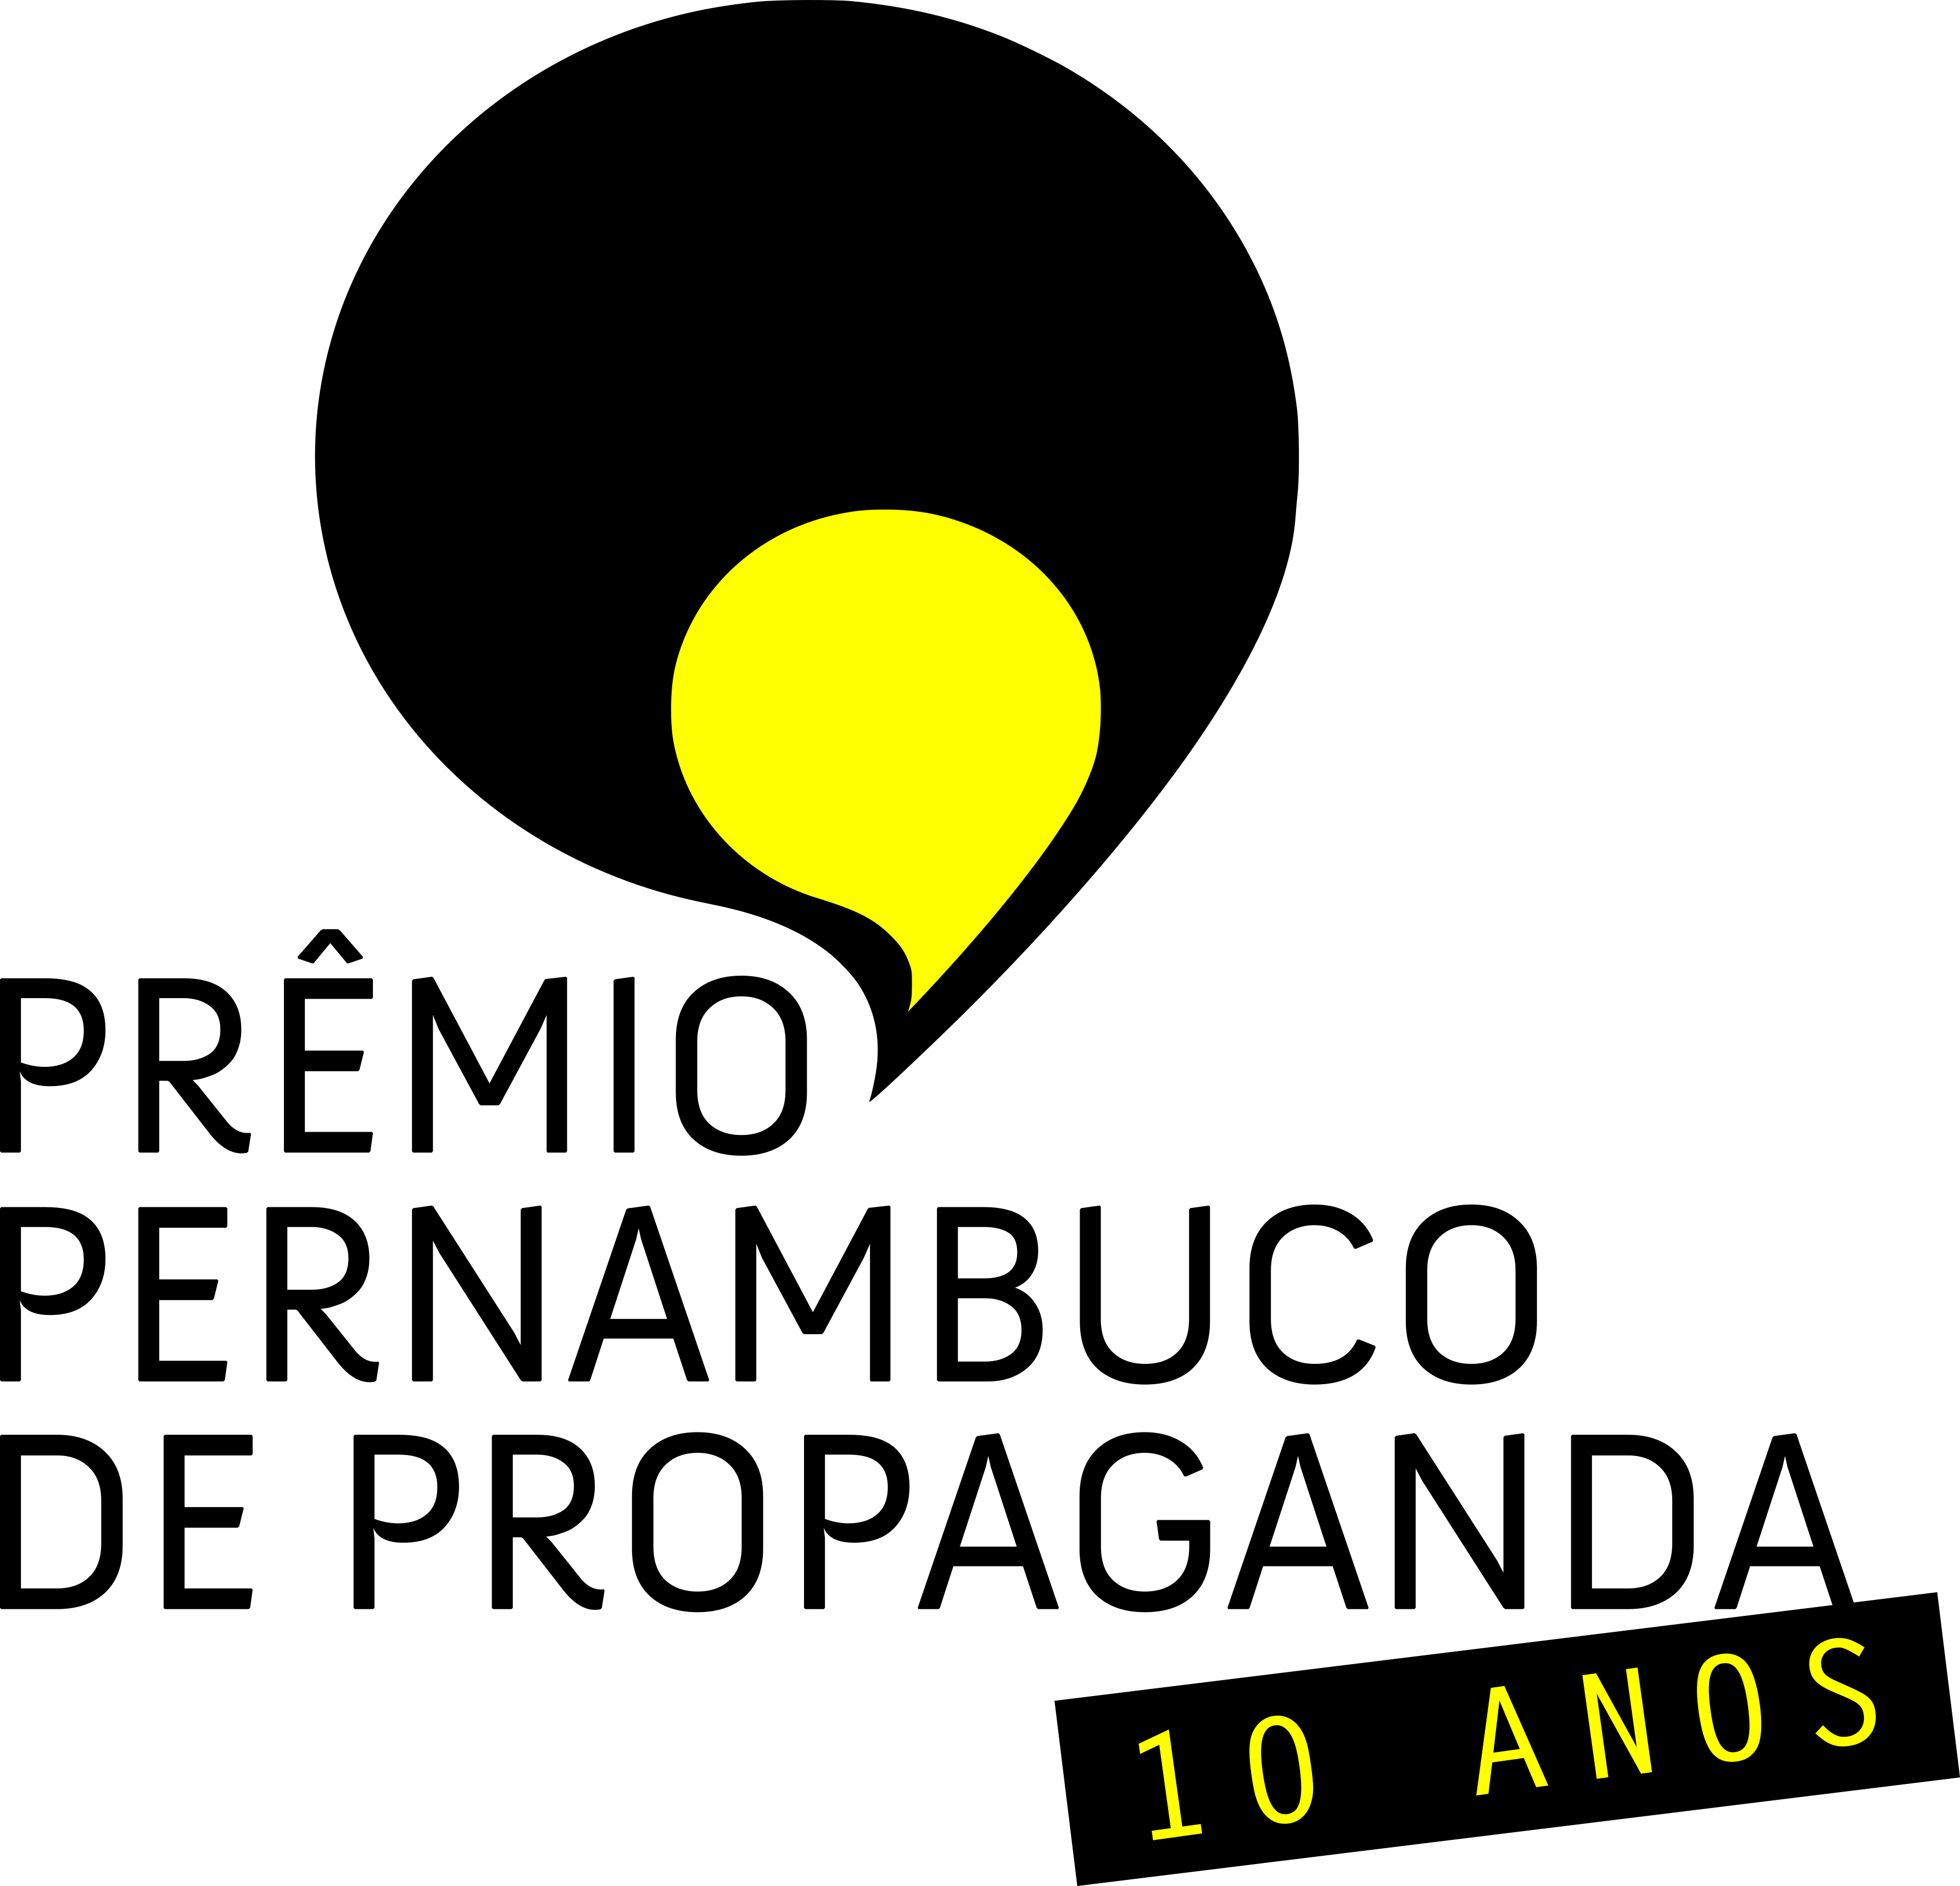 logo-10anos.png